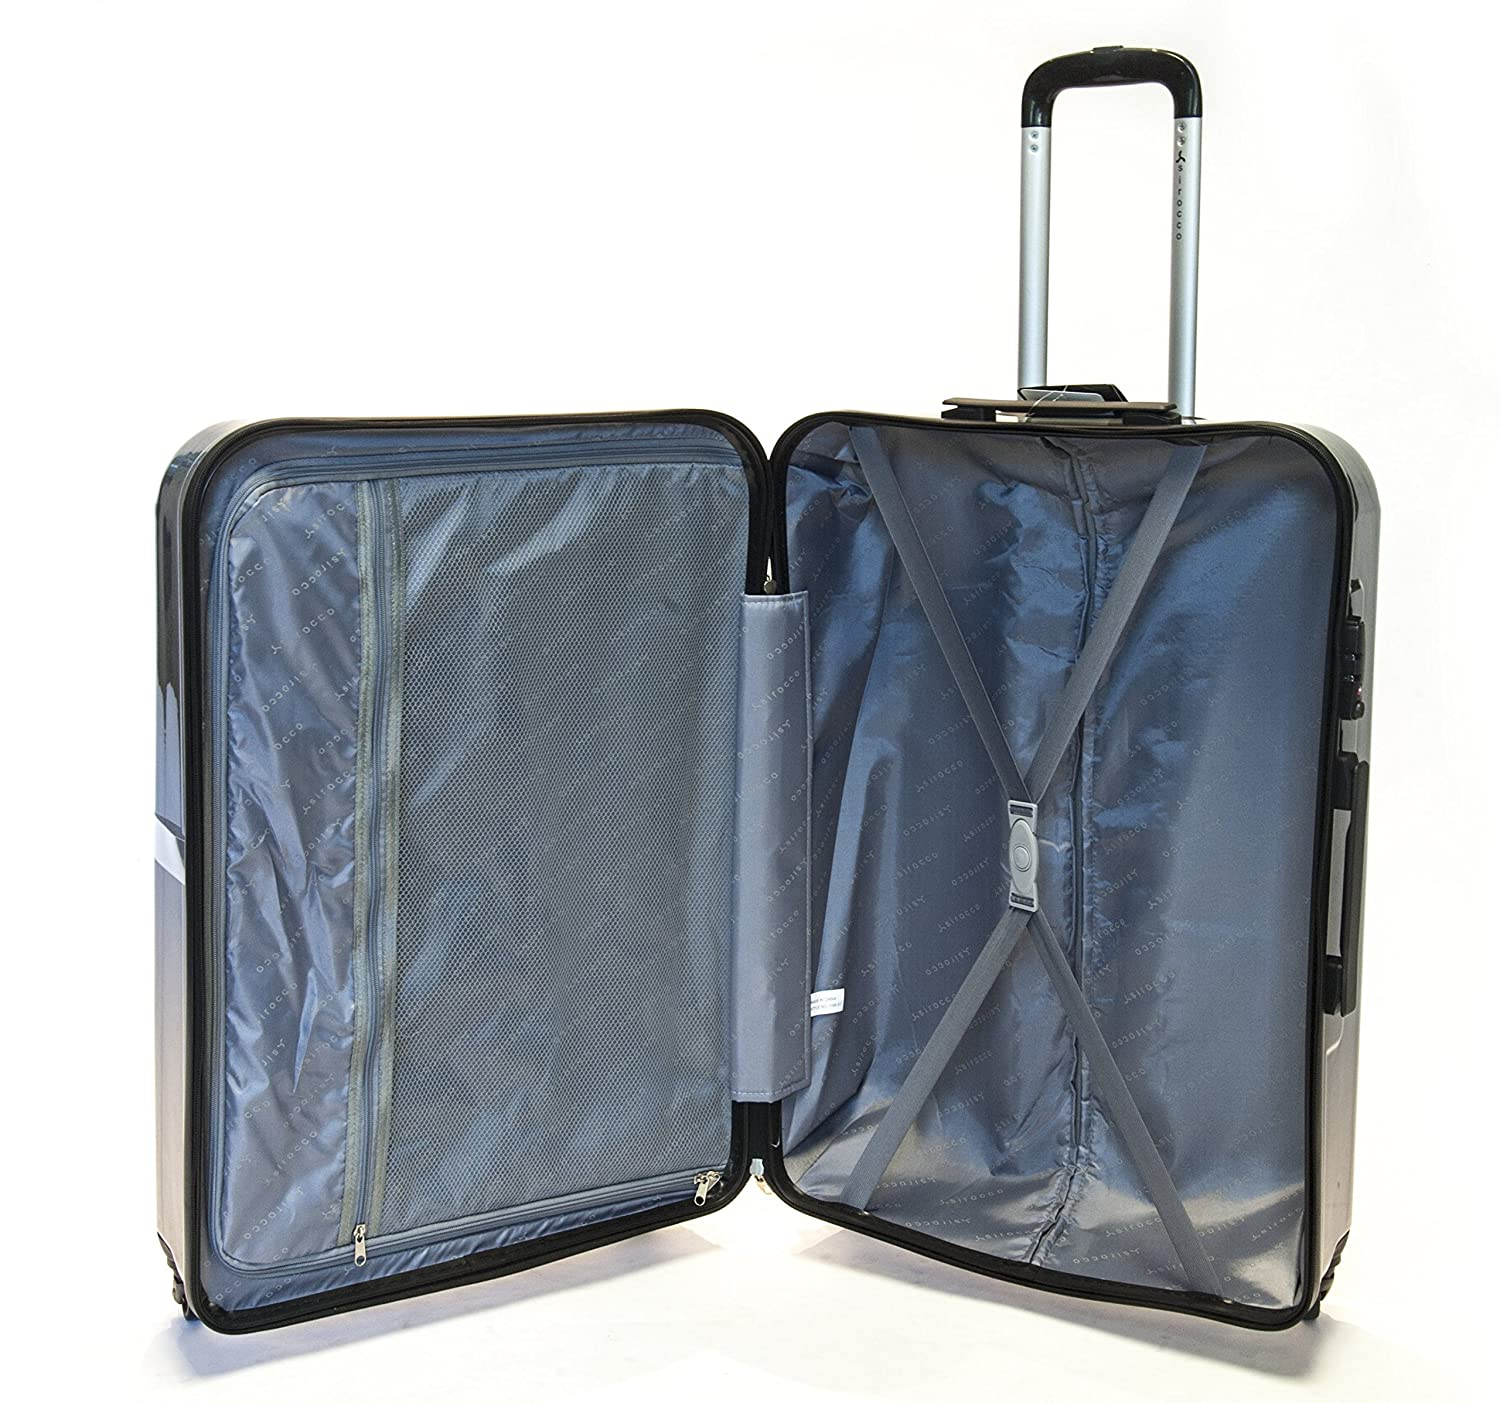 EasyJet /& BA 21 Cabin, Black 21 Premium Super Lightweight Waffle Style PC Durable Hard Shell Luggage Suitcase Travel Trolley Cases with 4 Wheels /& Built-in TSA Lock Cabin Approved for Ryanair